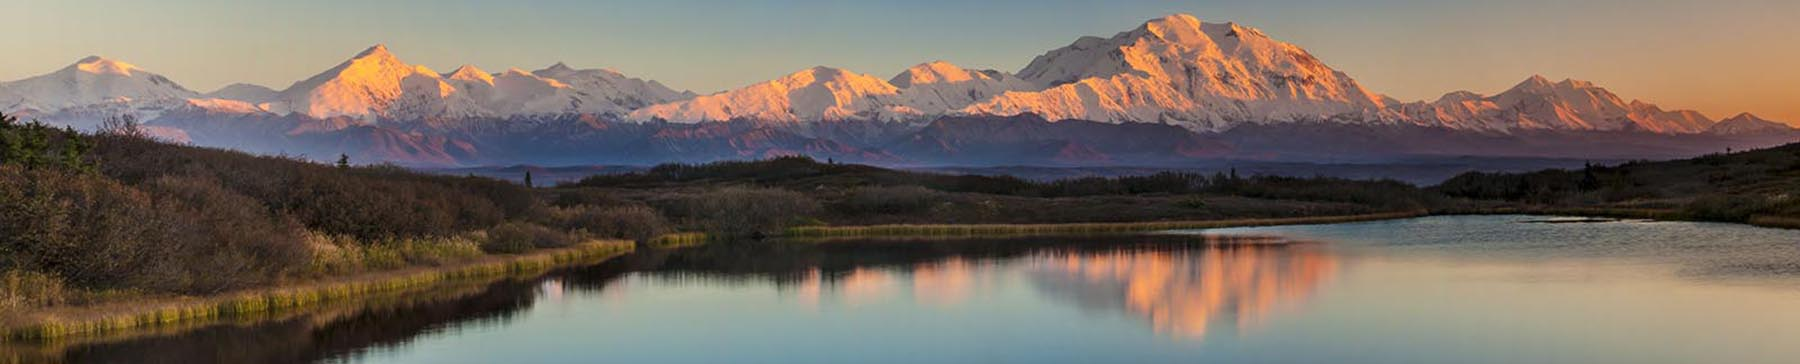 Evening alpenglow adds pink to Mt. McKinley and Mt. Brooks in this view form a pond along the park road in Denali National Park...